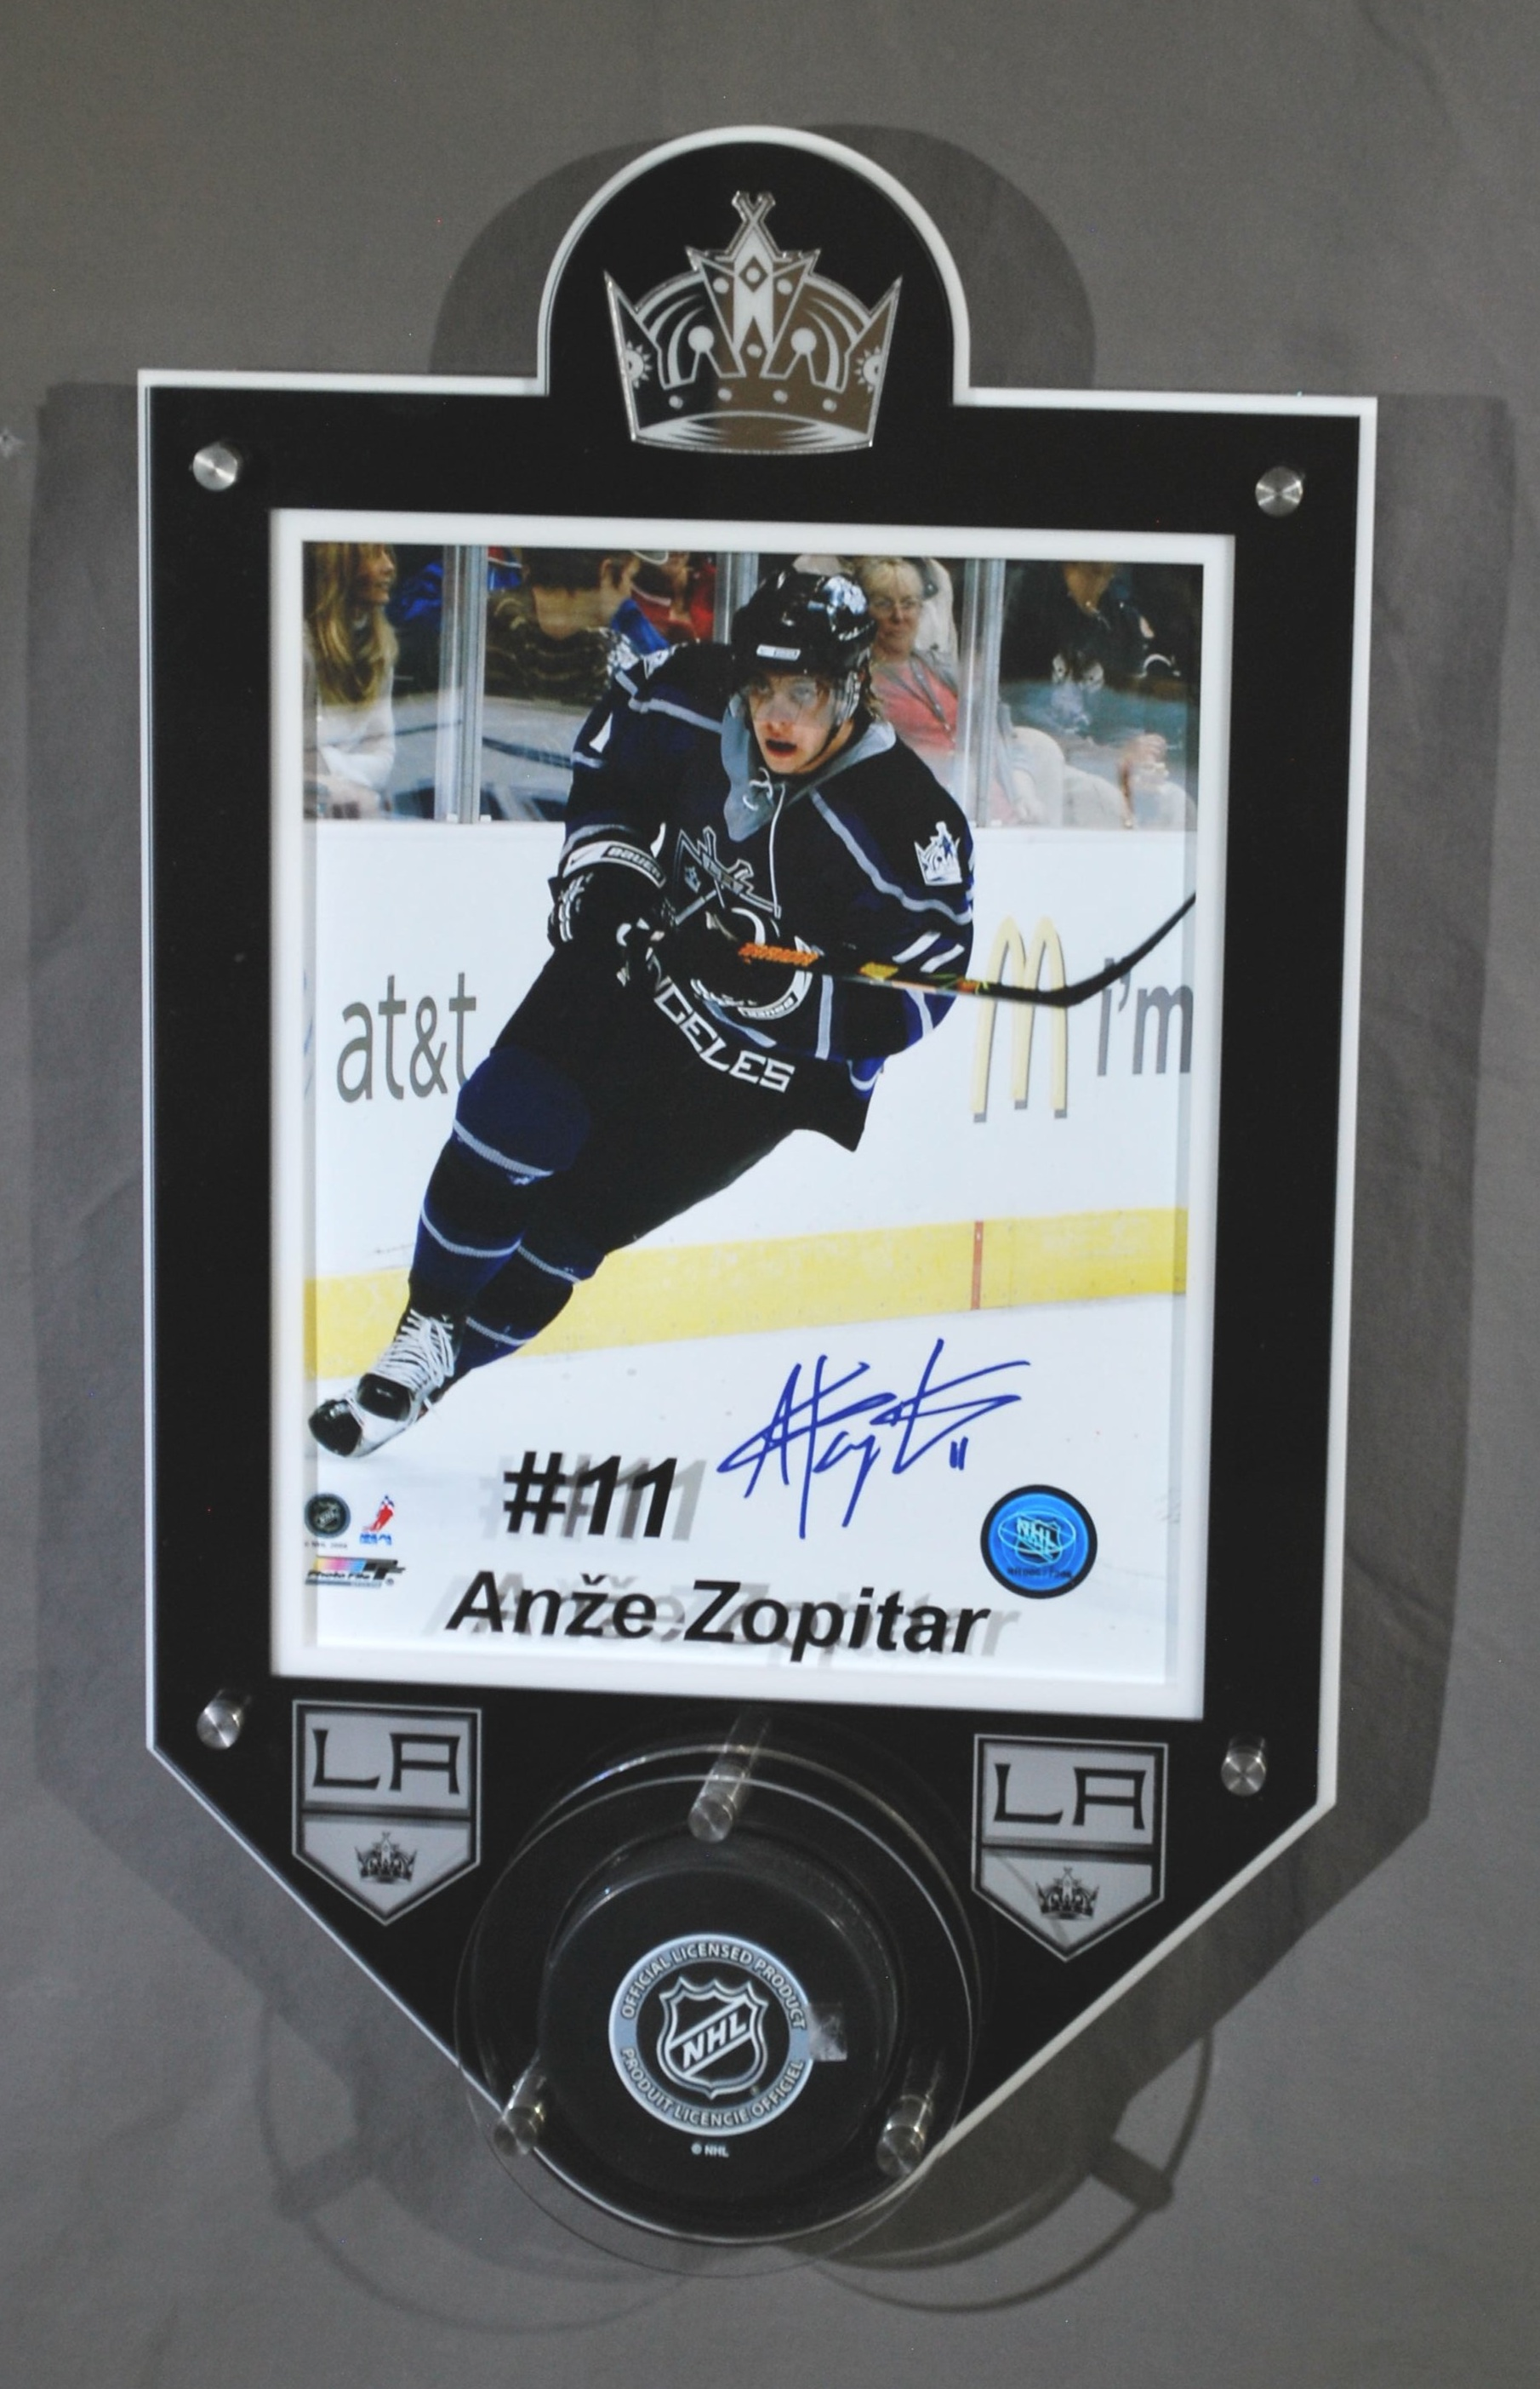 8x10 portrait frame holds hockey puck - 5-layer acrylic, in team colors, Inlay logo, color enhanced player name and number.  Contact us for pricing information.